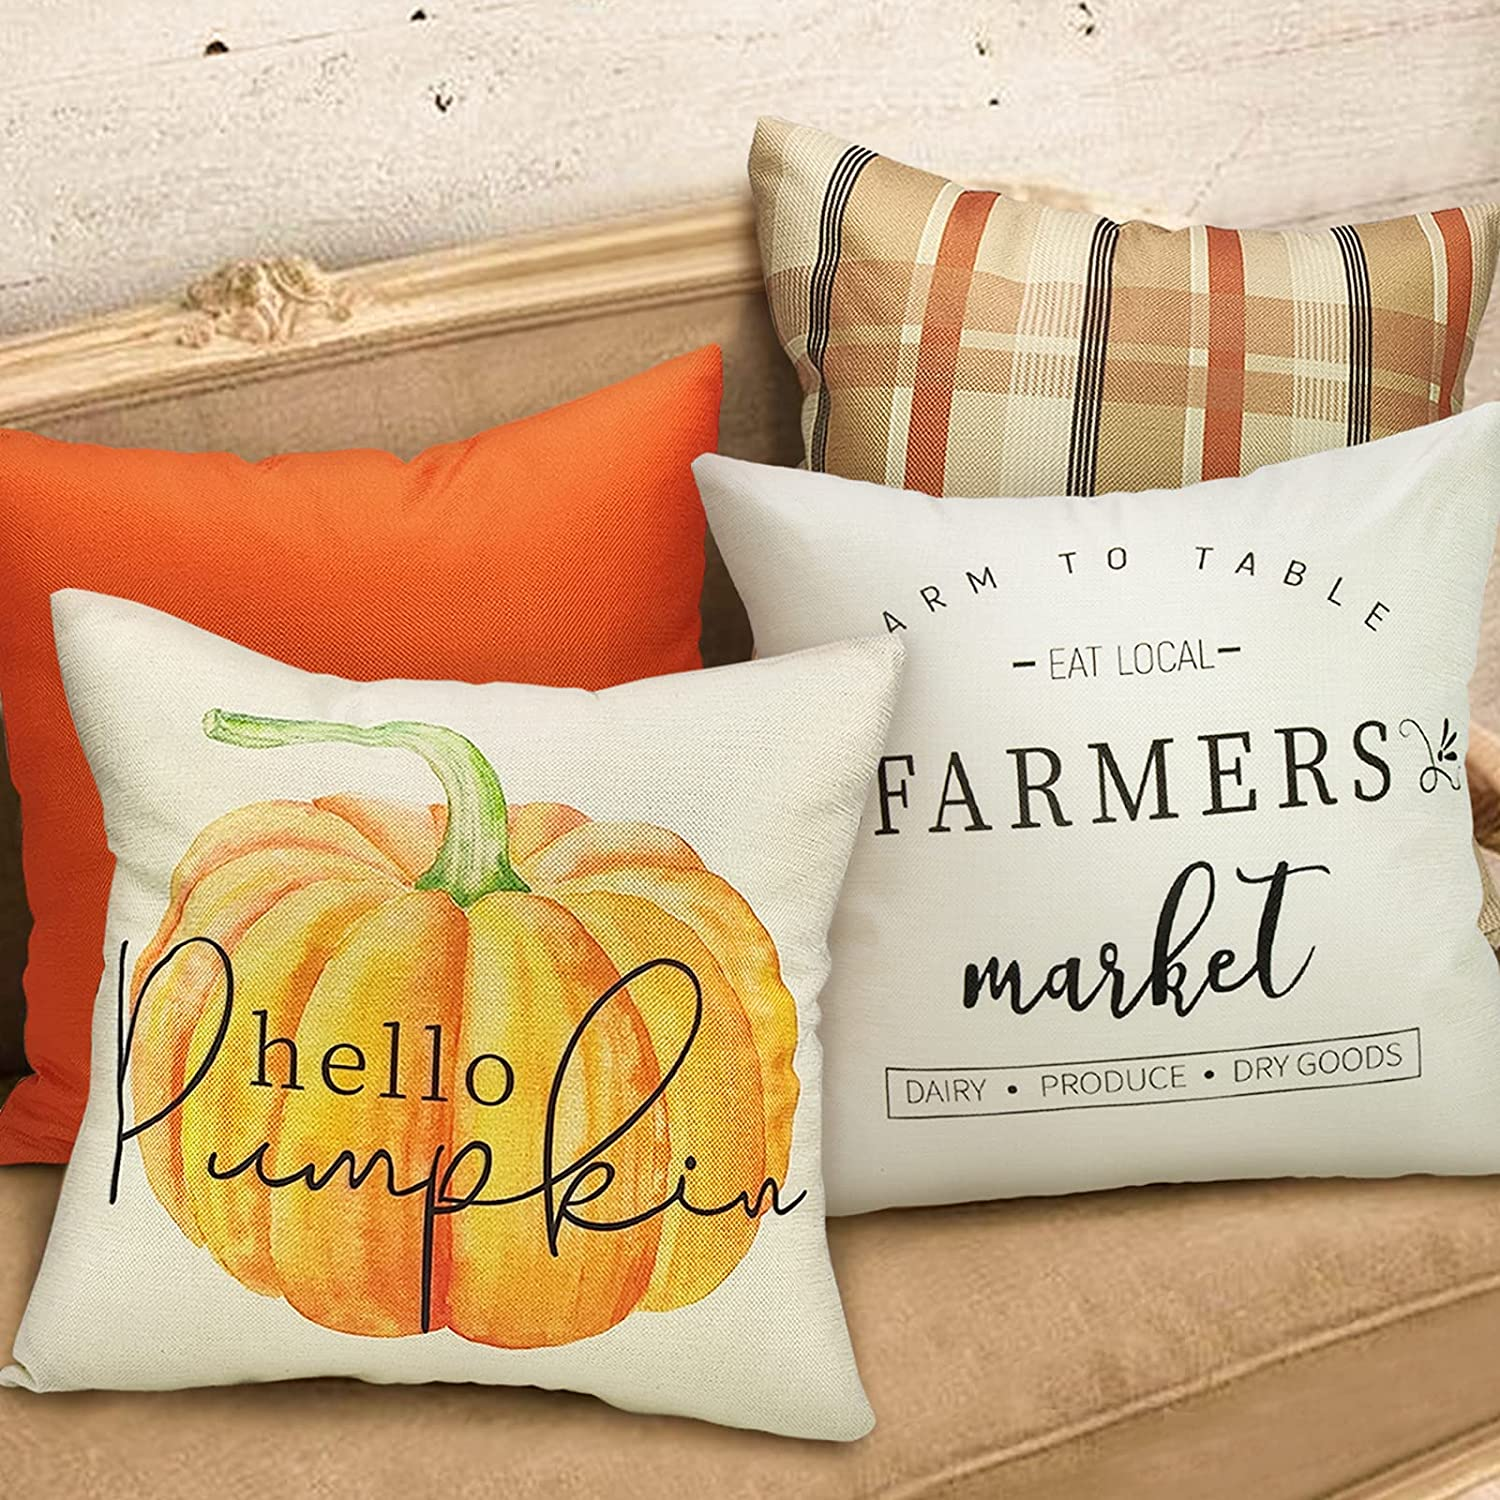 Fall Decor - Fall Pillow Covers - Fall Decorations for Home - 18x18 Set of 4 for Autumn Halloween Thanksgiving Harvest - Farmhouse Pumpkin Throw Pillows Decorative CushionCases